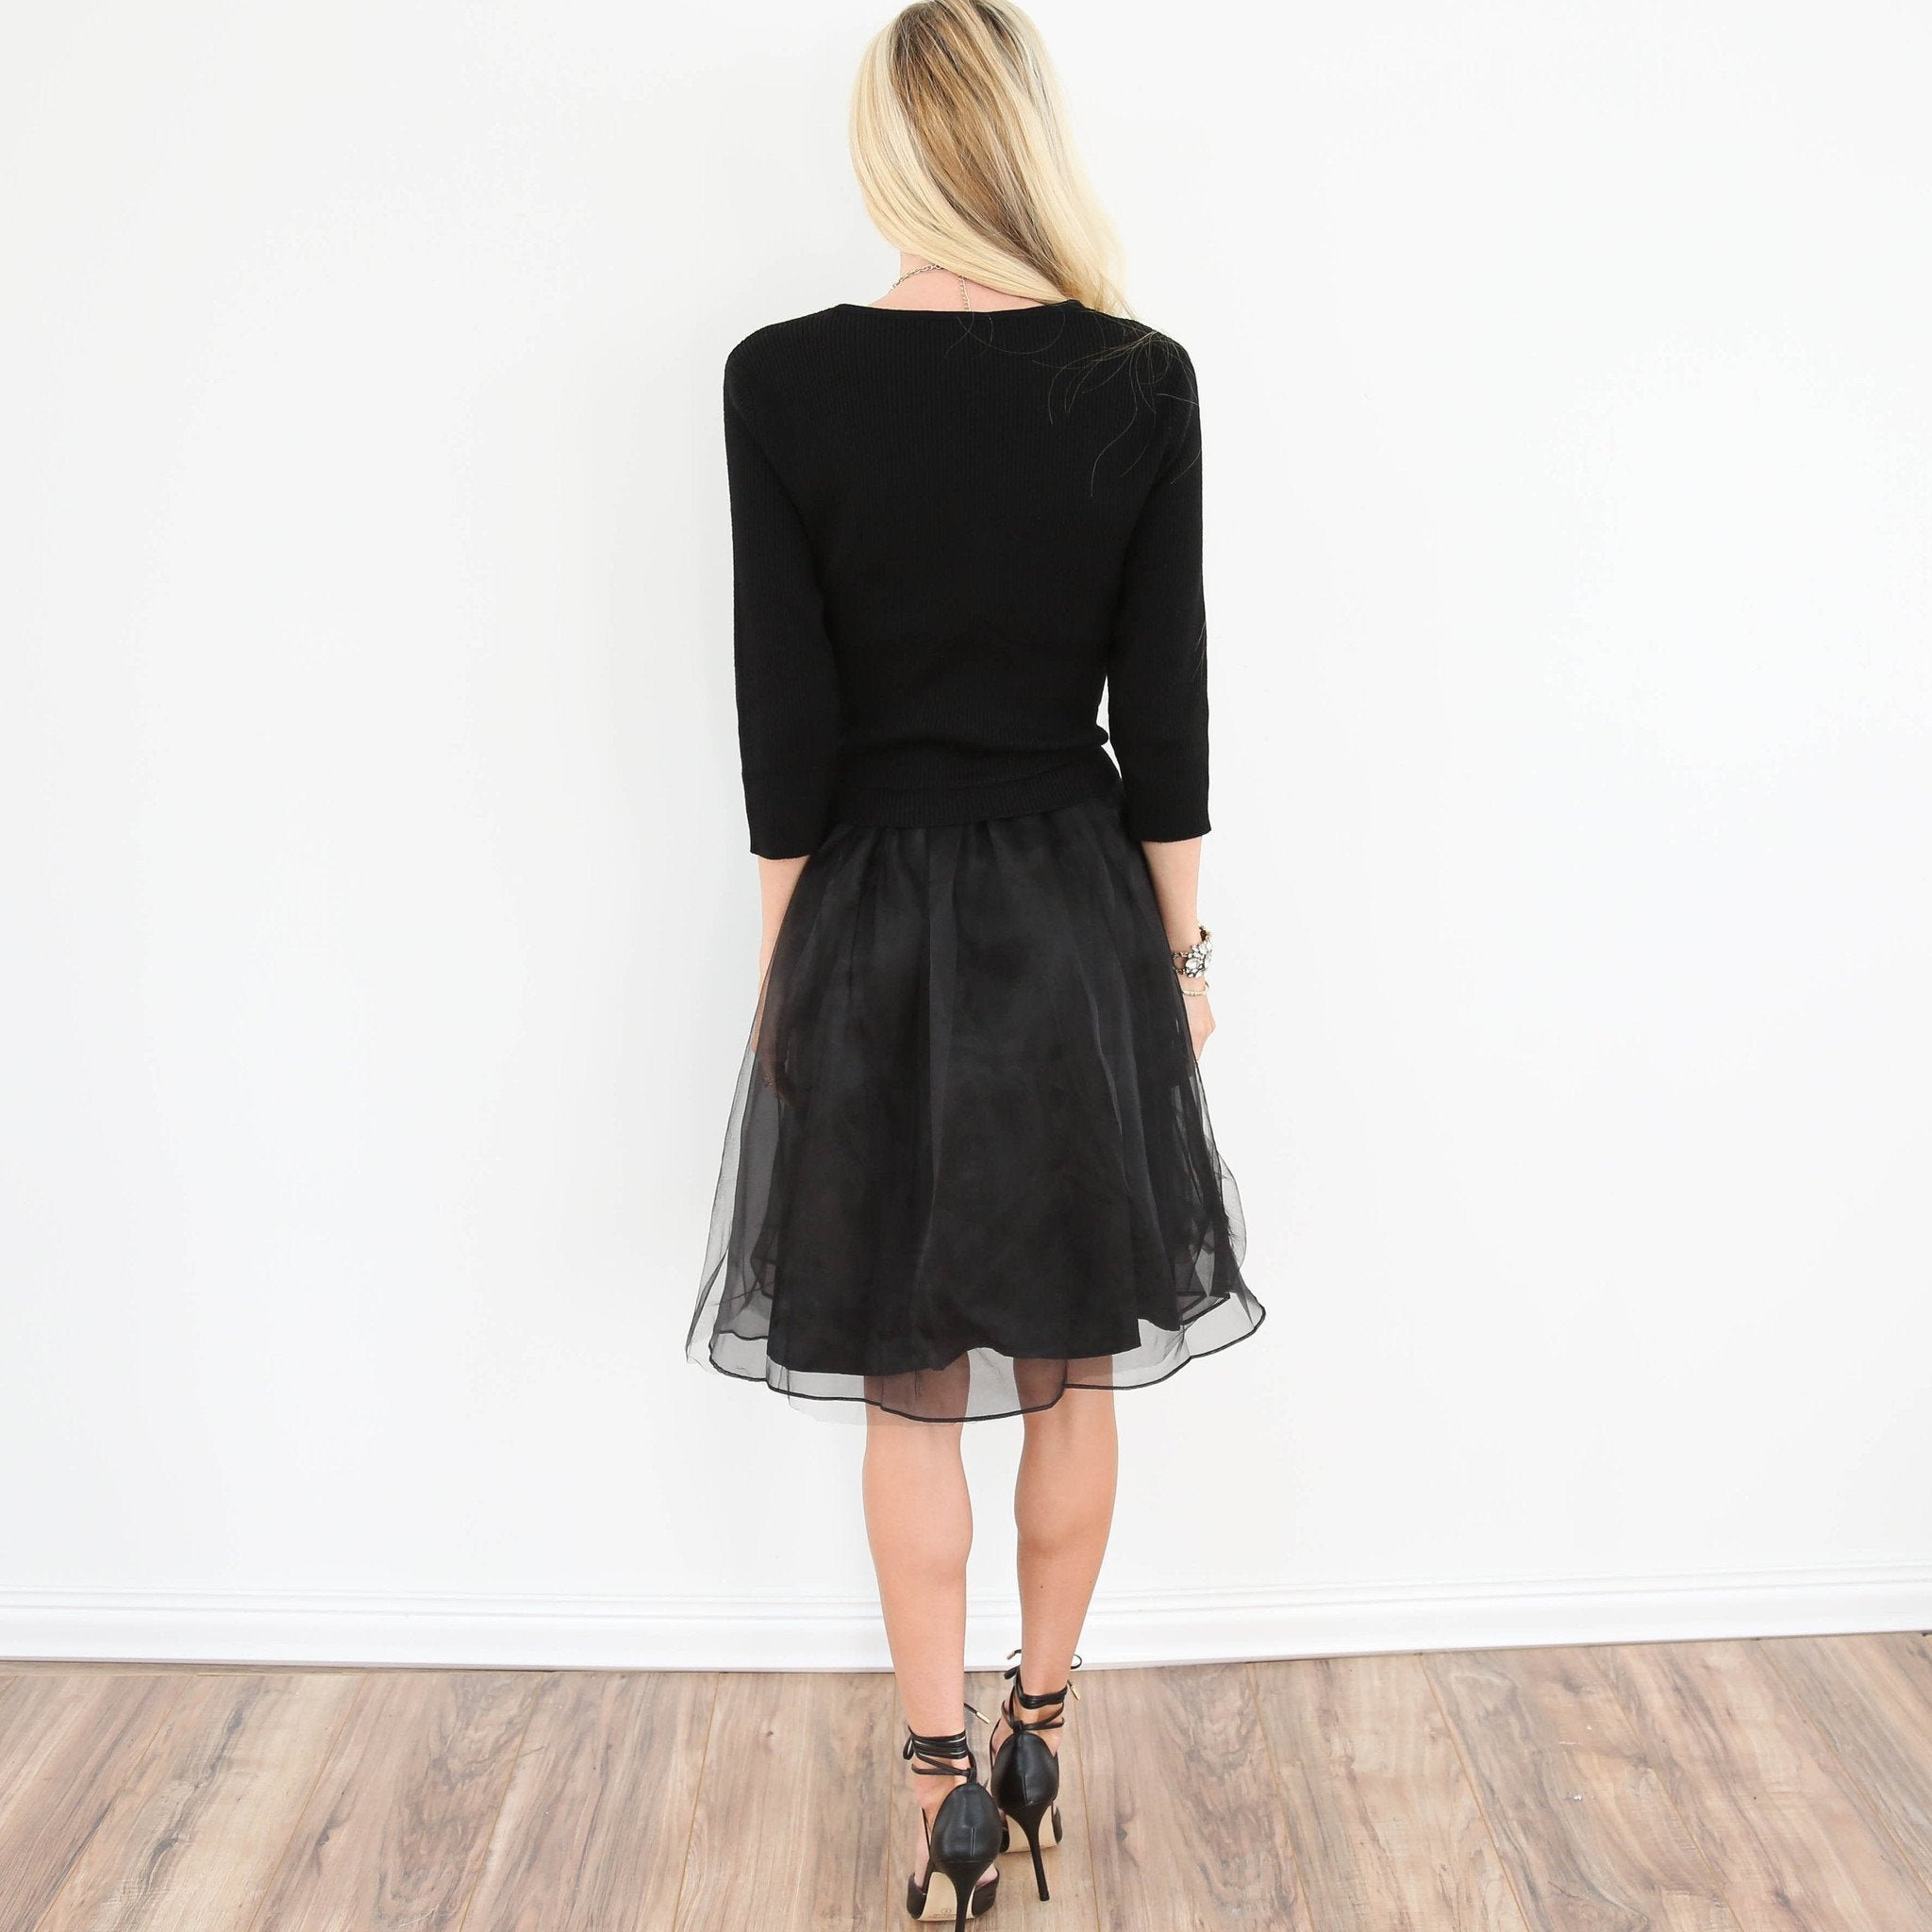 Lovette Dress in Black